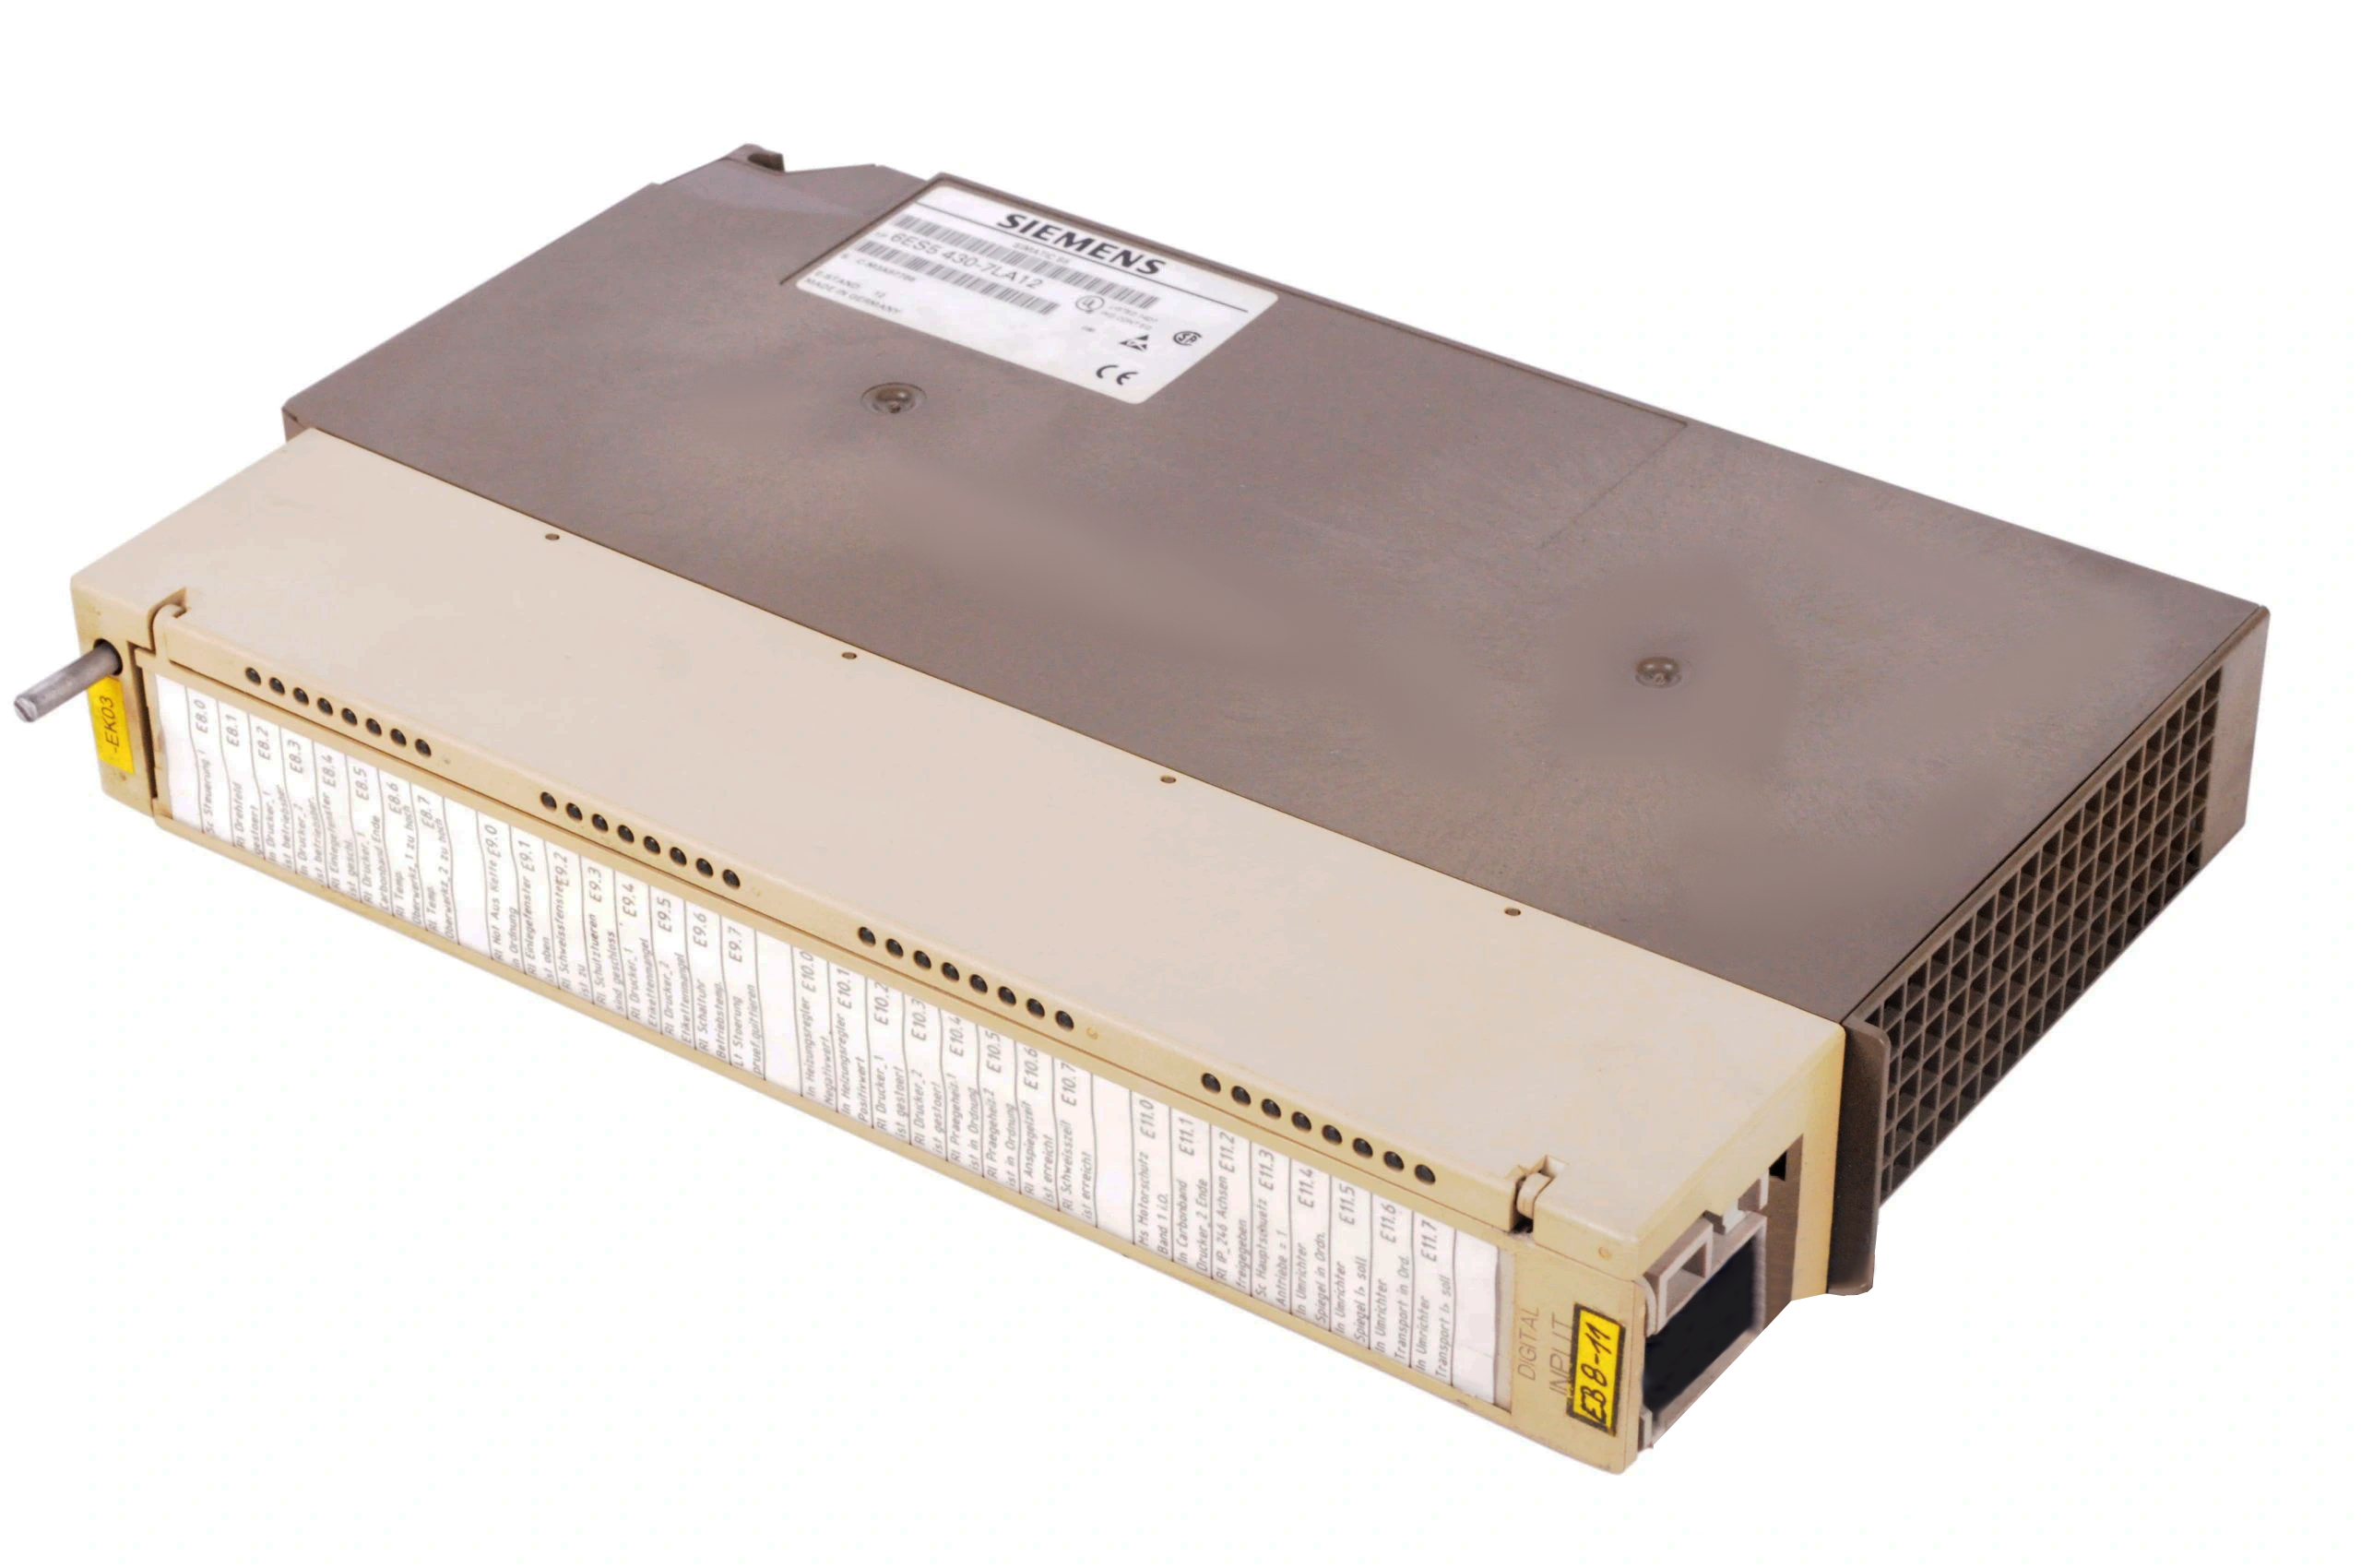 6ES5430-7LA12 | Siemens | SIMATIC S5 430 Digital Input Module *Ready Stock - 1 UNIT ONLY*